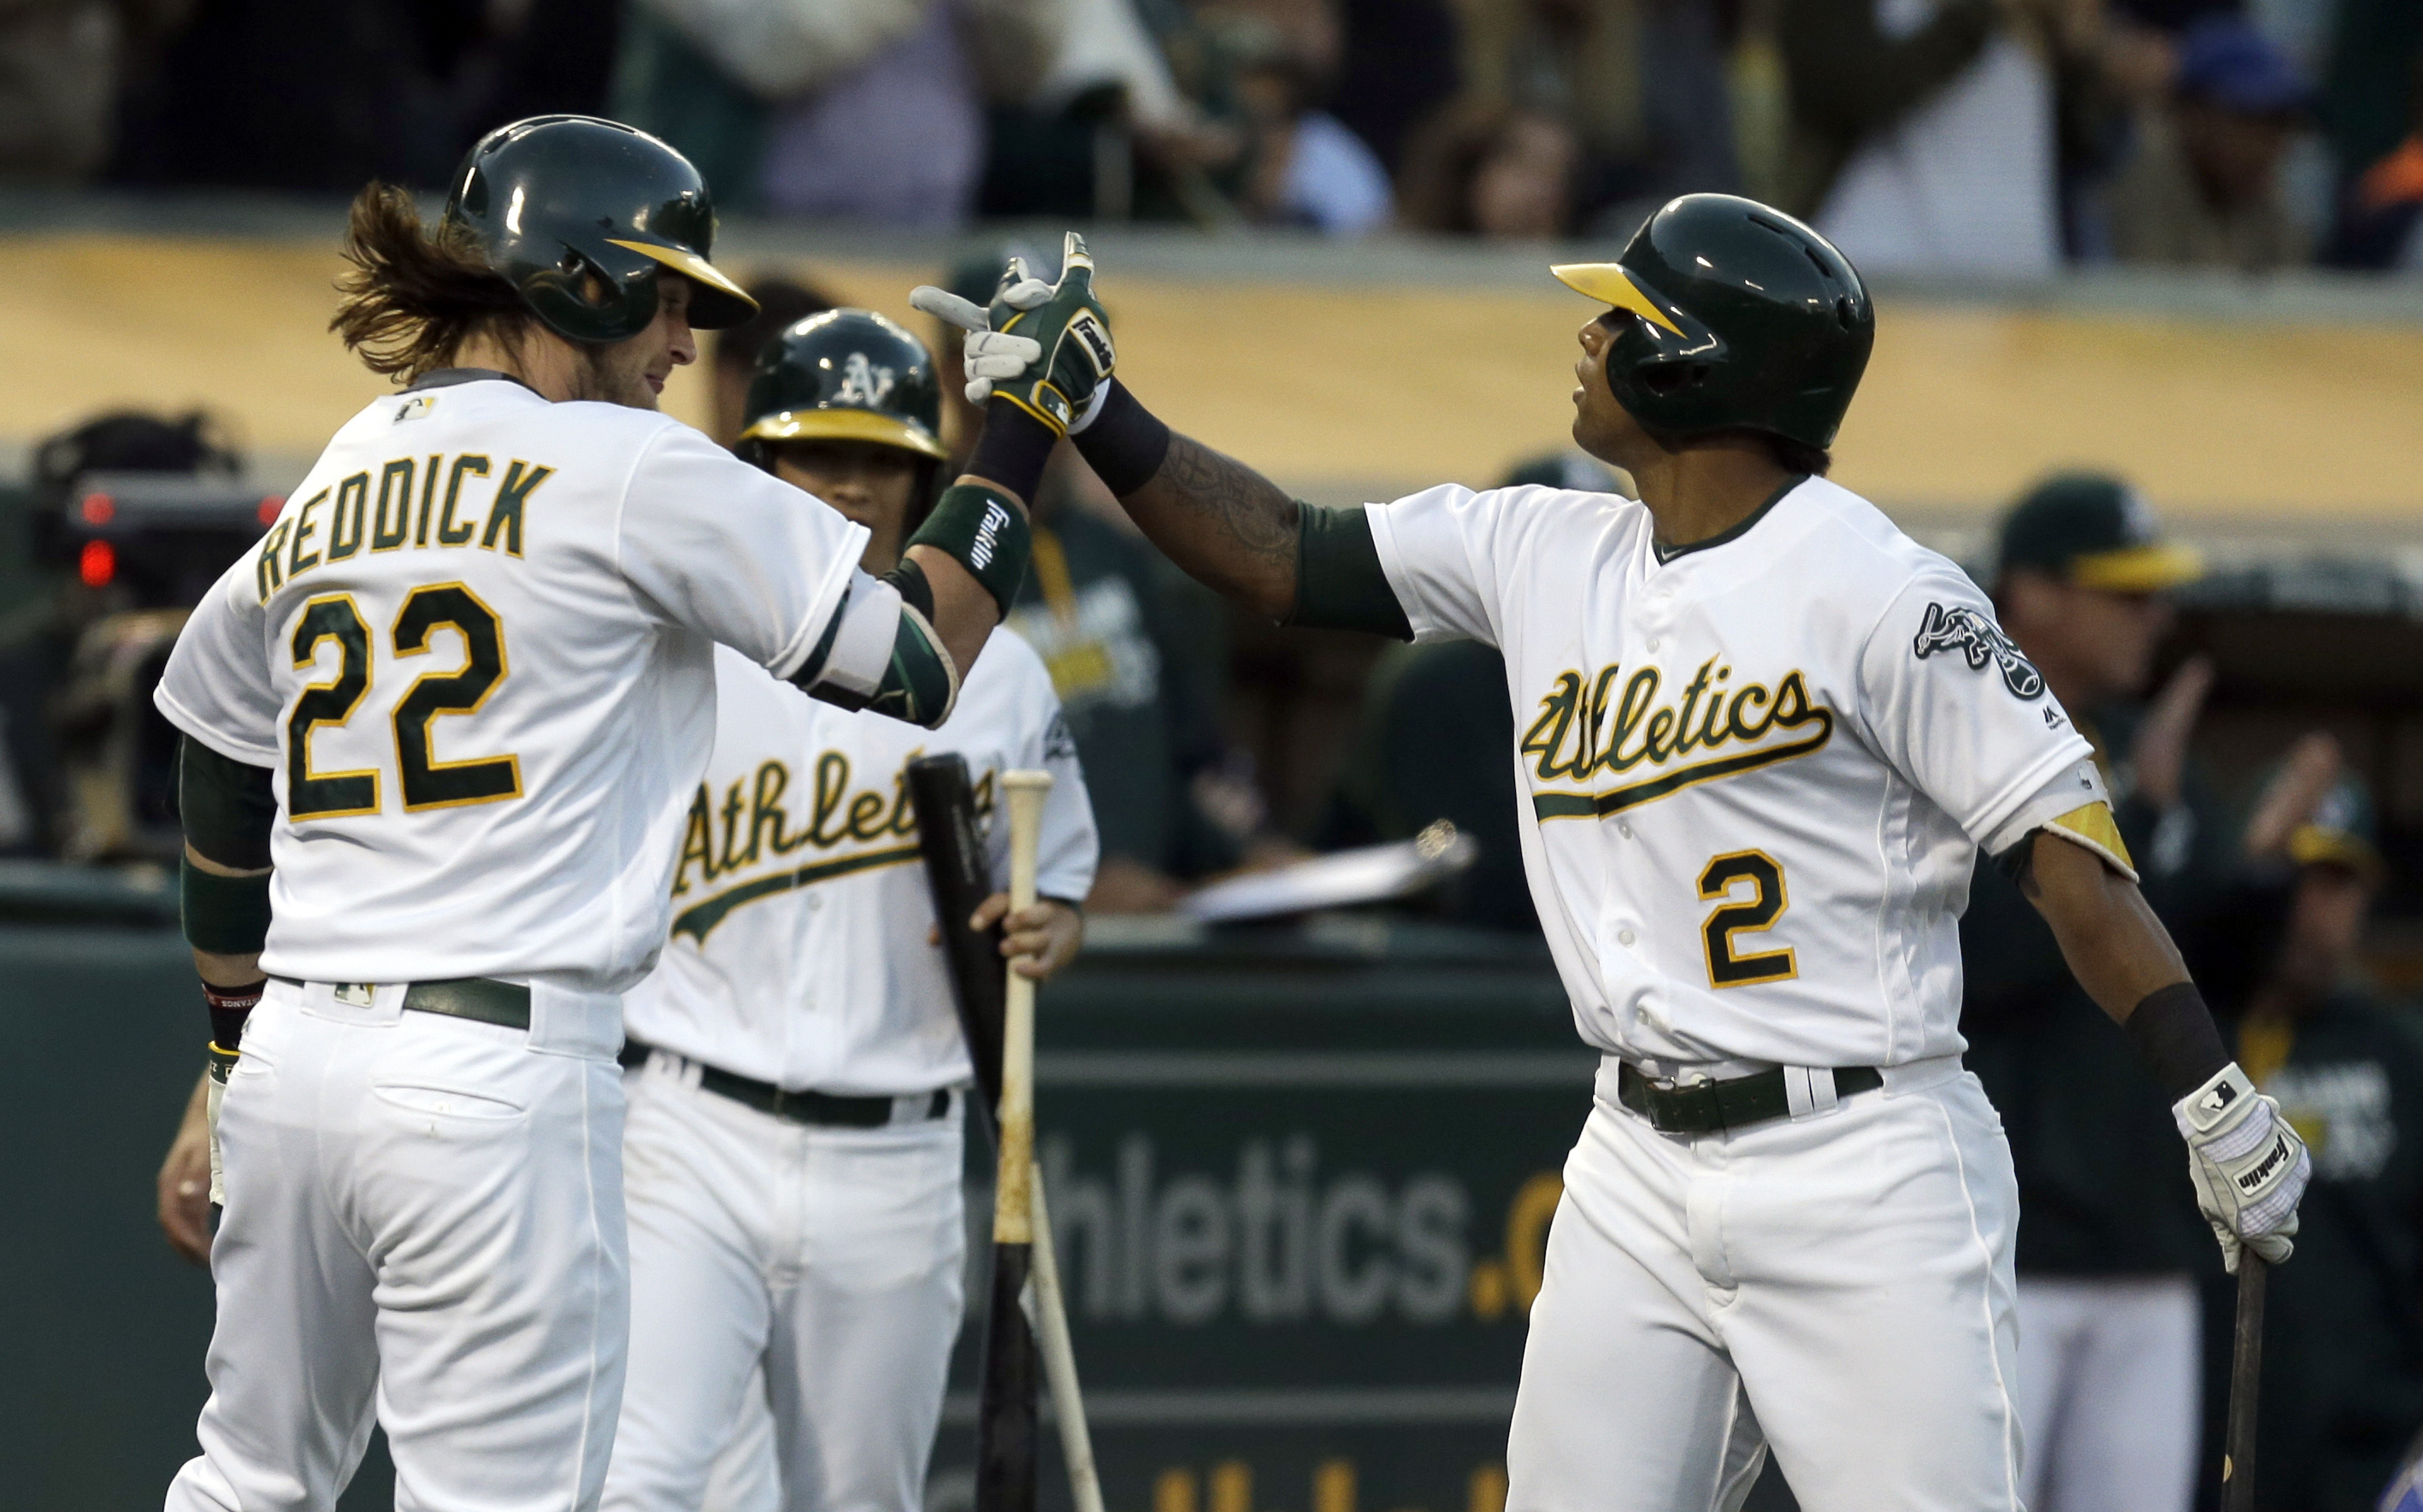 Oakland Athletics' Josh Reddick, left, and Khris Davis (2) celebrate after Reddick hit a two-run home run against the Toronto Blue Jays during the fifth inning of a baseball game Friday, July 15, 2016, in Oakland, Calif. (AP Photo/Ben Margot)